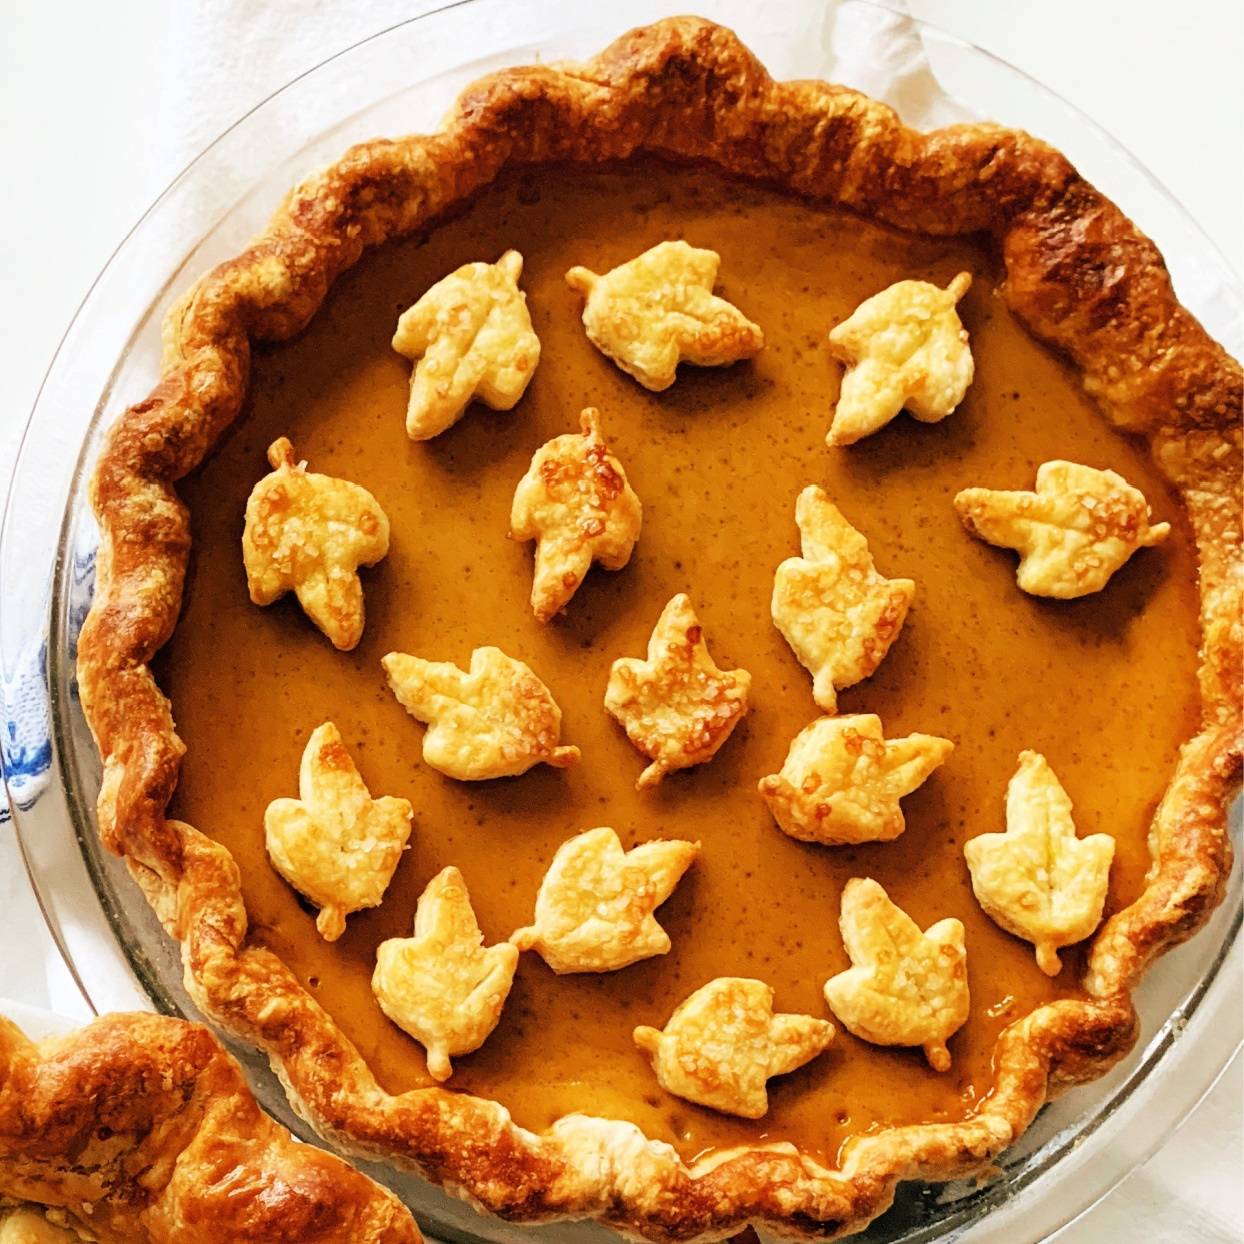 pumpkin pie with pastry leaf cutouts on top